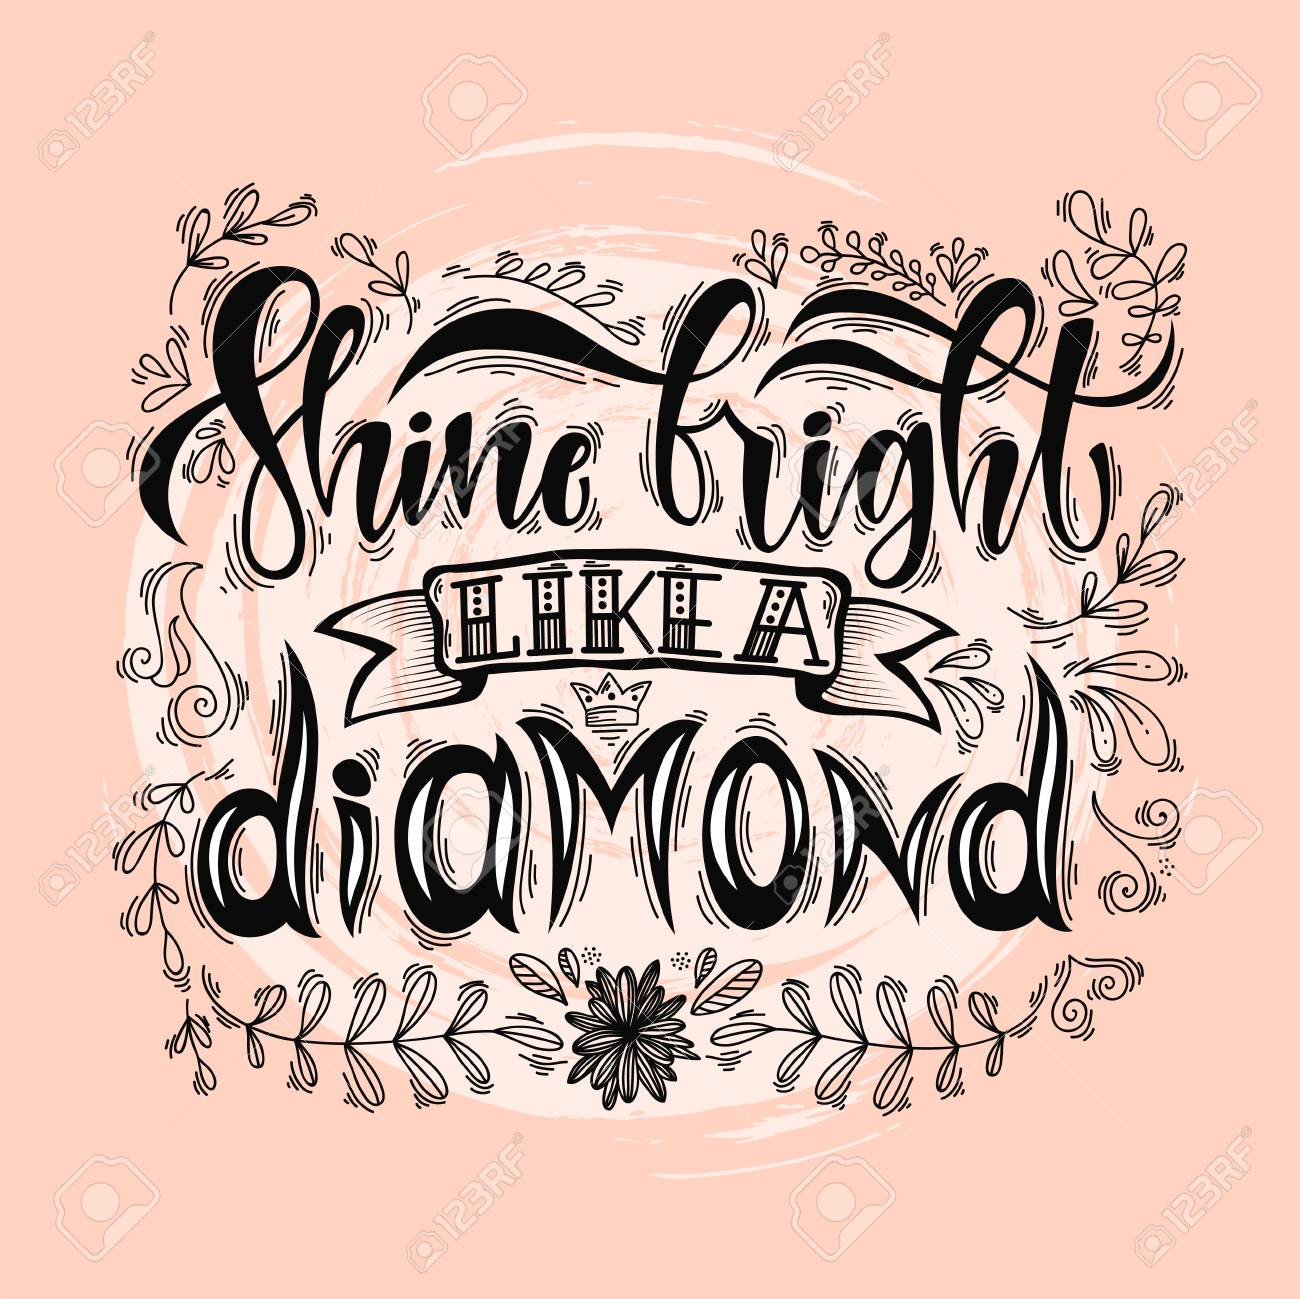 quote you pressure to about motivation quotes are in diamond dimonds success attachment shine today